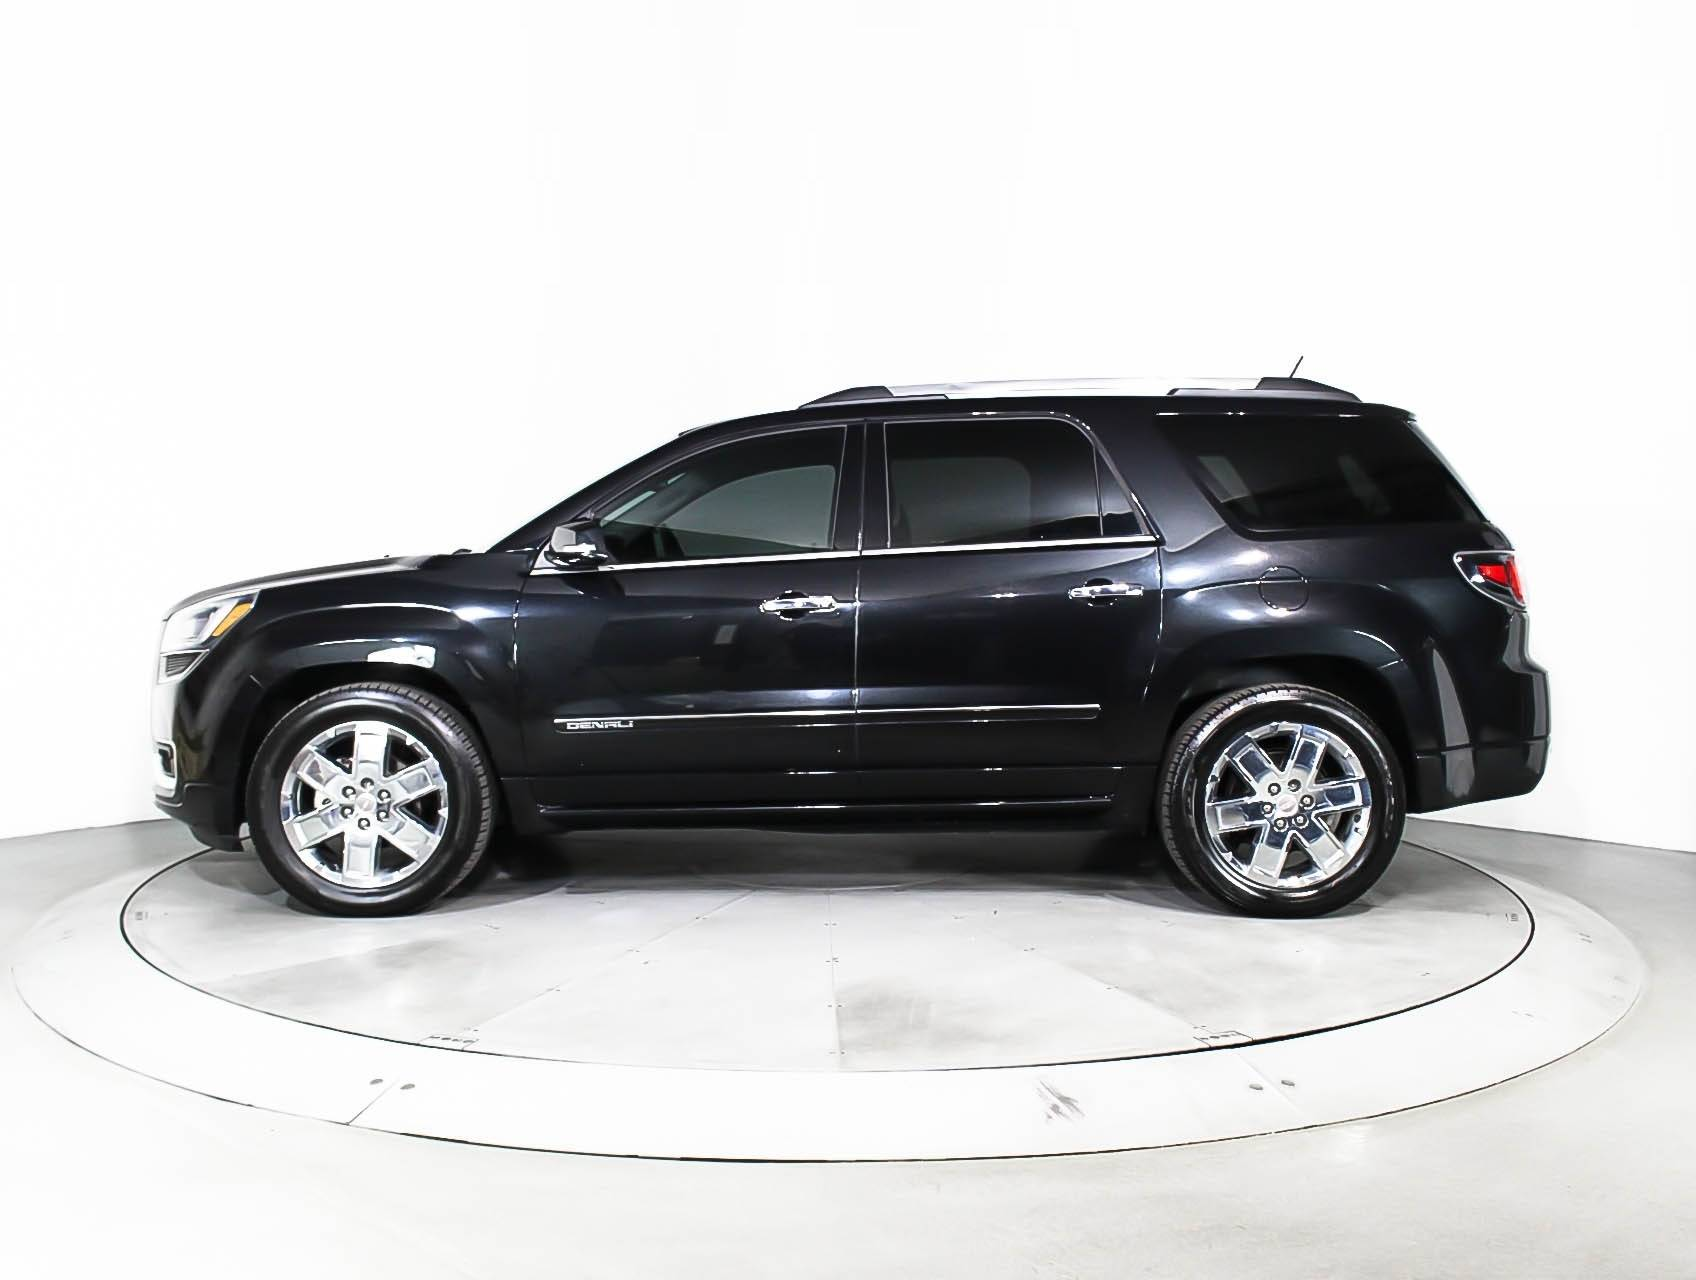 Used 2014 Gmc Acadia Denali Suv For Sale In Hollywood Fl 93300 Florida Fine Cars